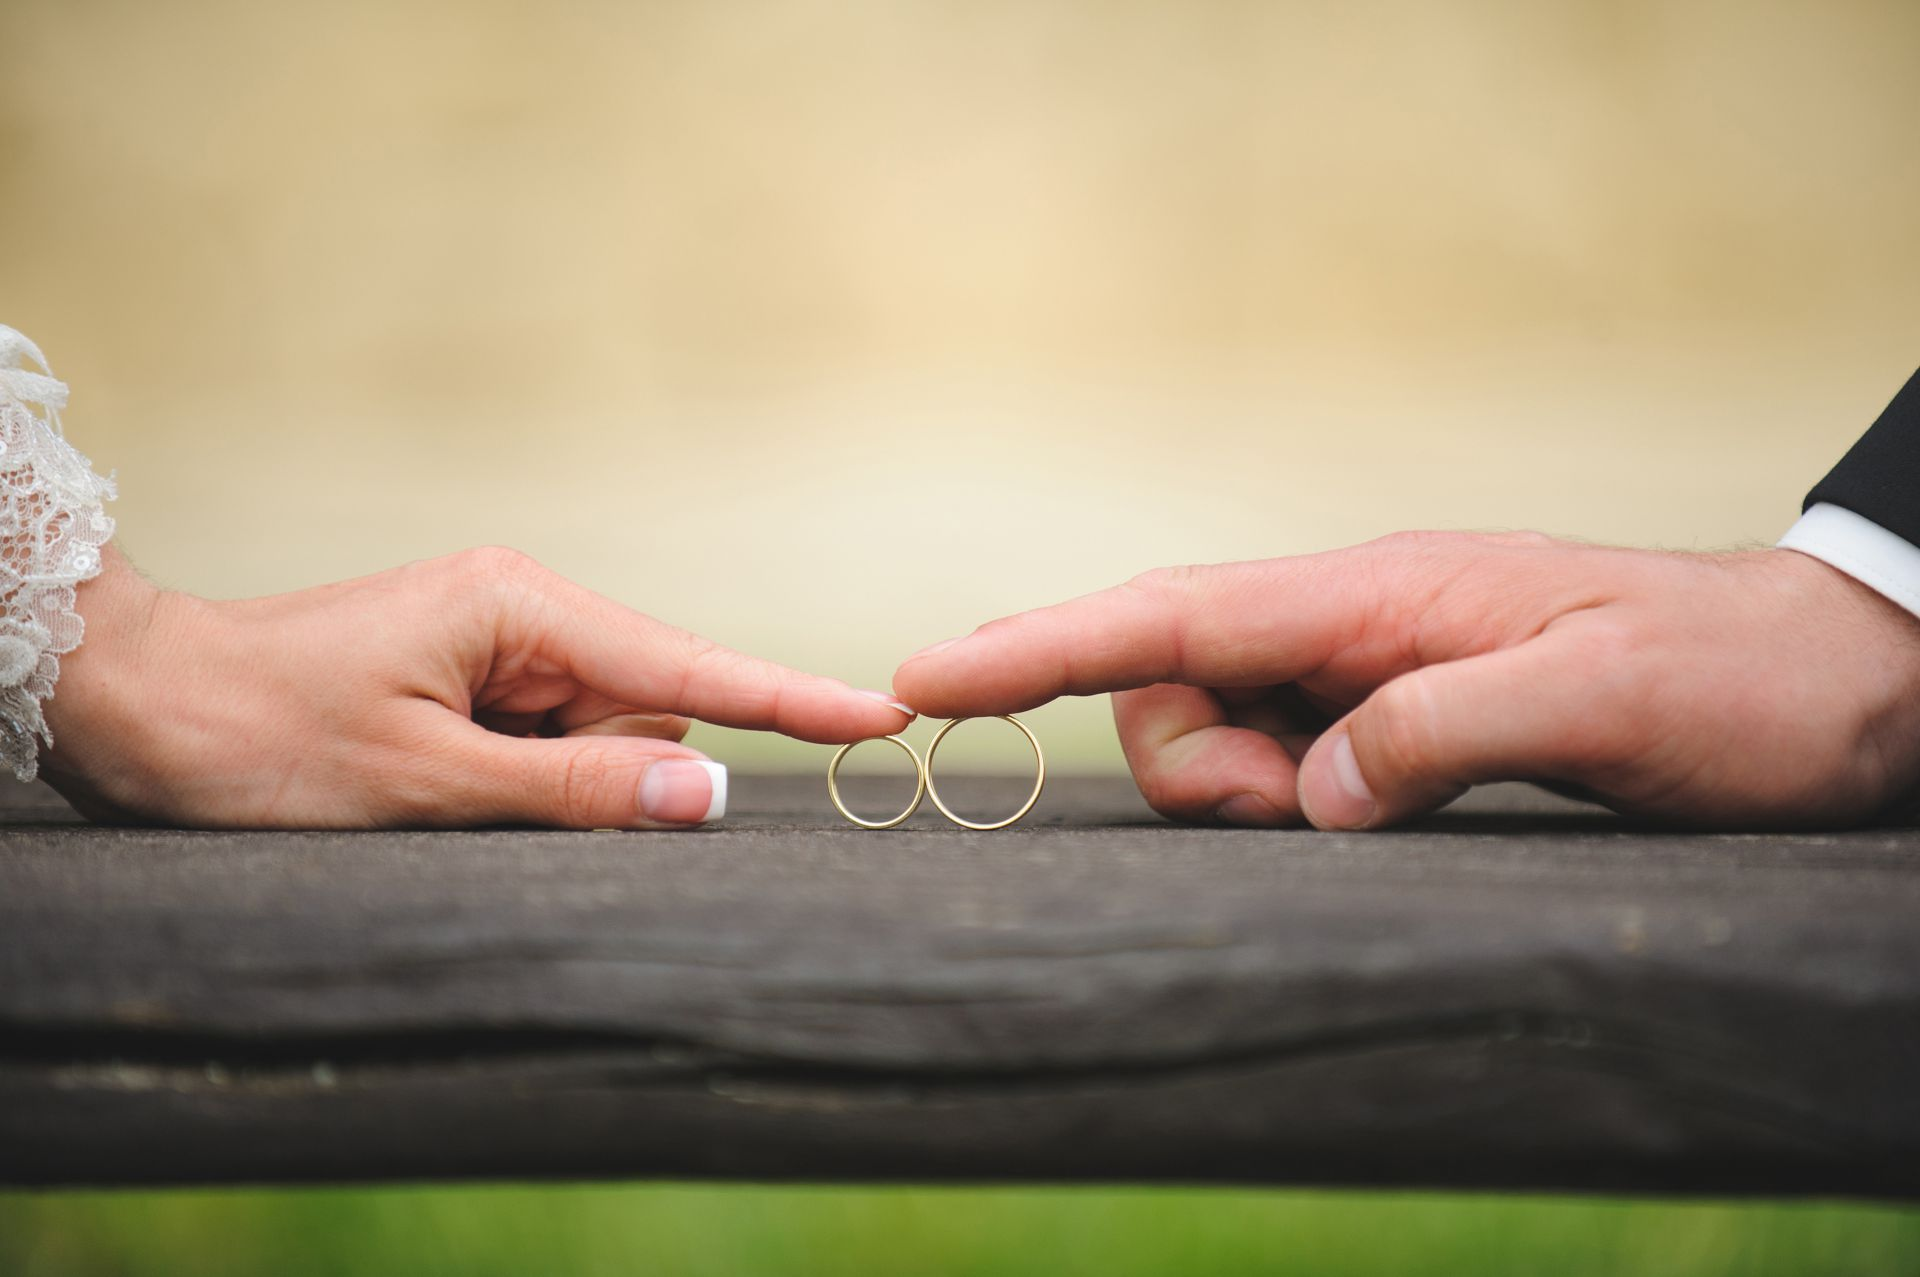 An Image of a bride's hand and groom's hand touching each other